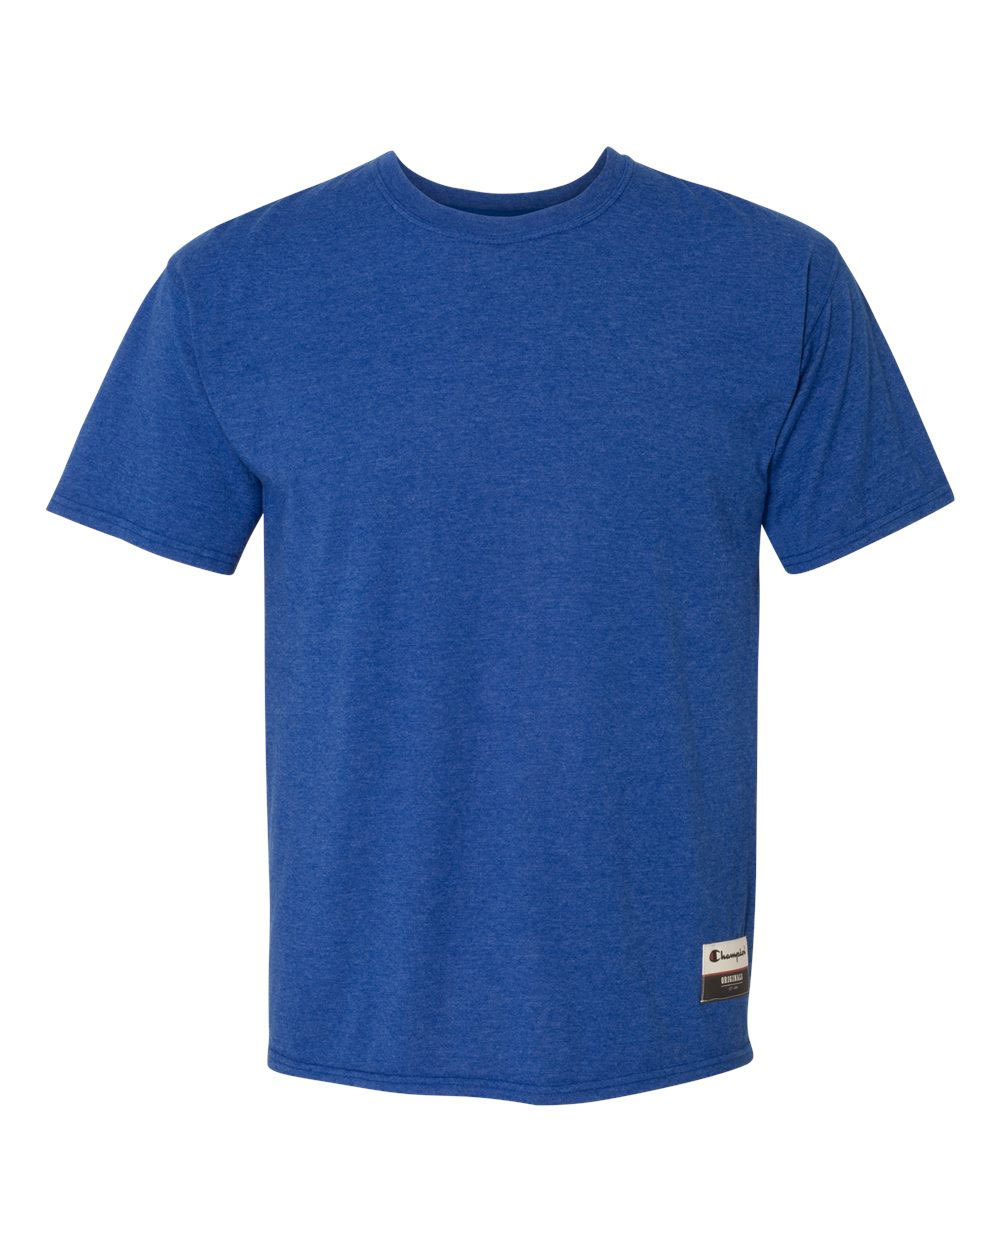 Champion - Mens Authentic Originals Soft-Wash T-Shirt